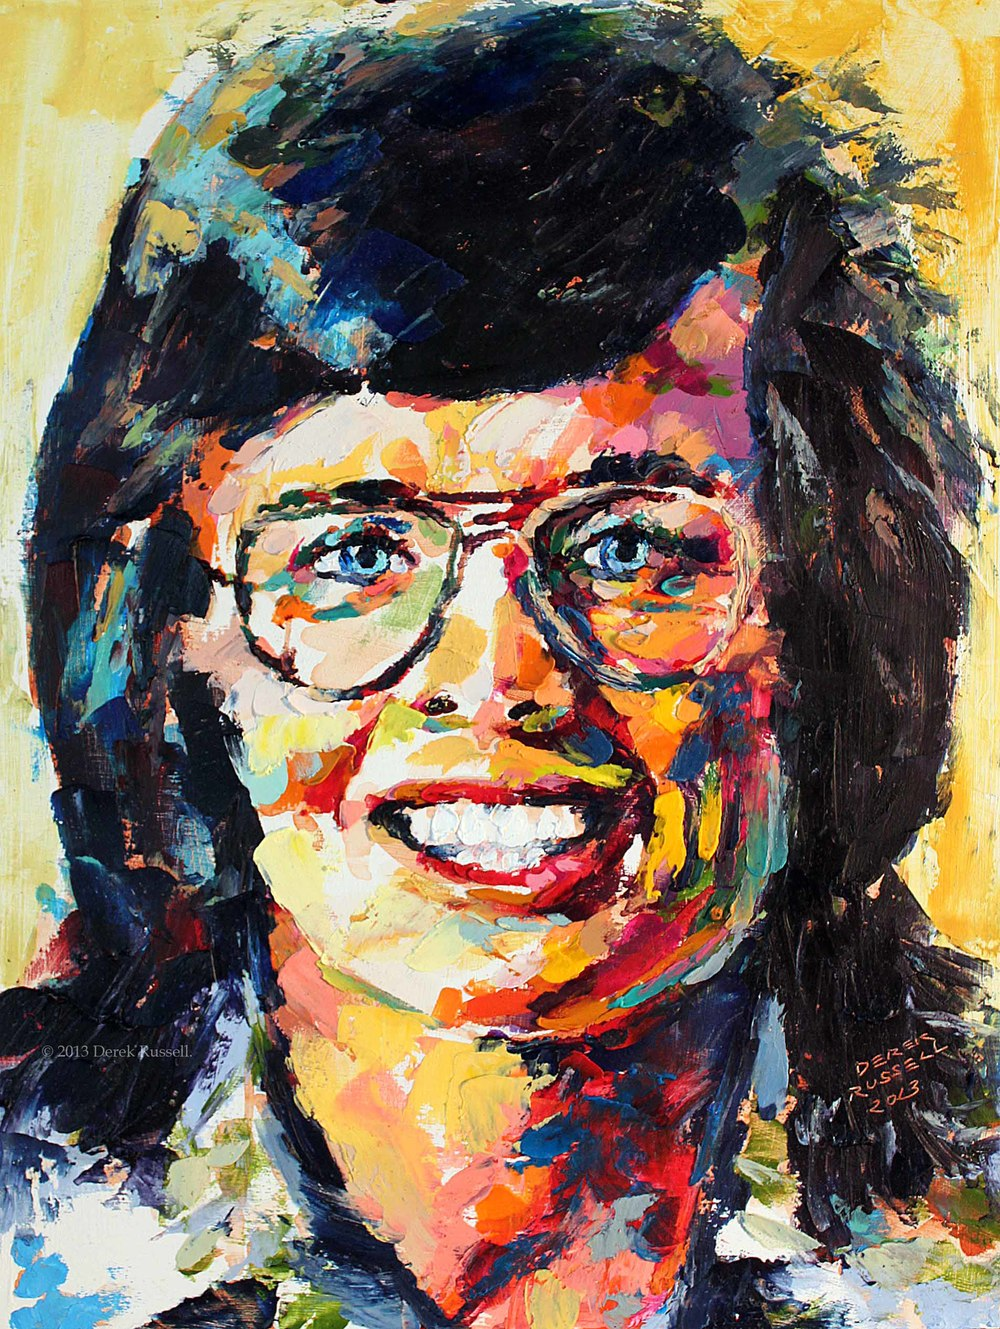 Billie Jean King - Original Oil Painting — Derek Russell